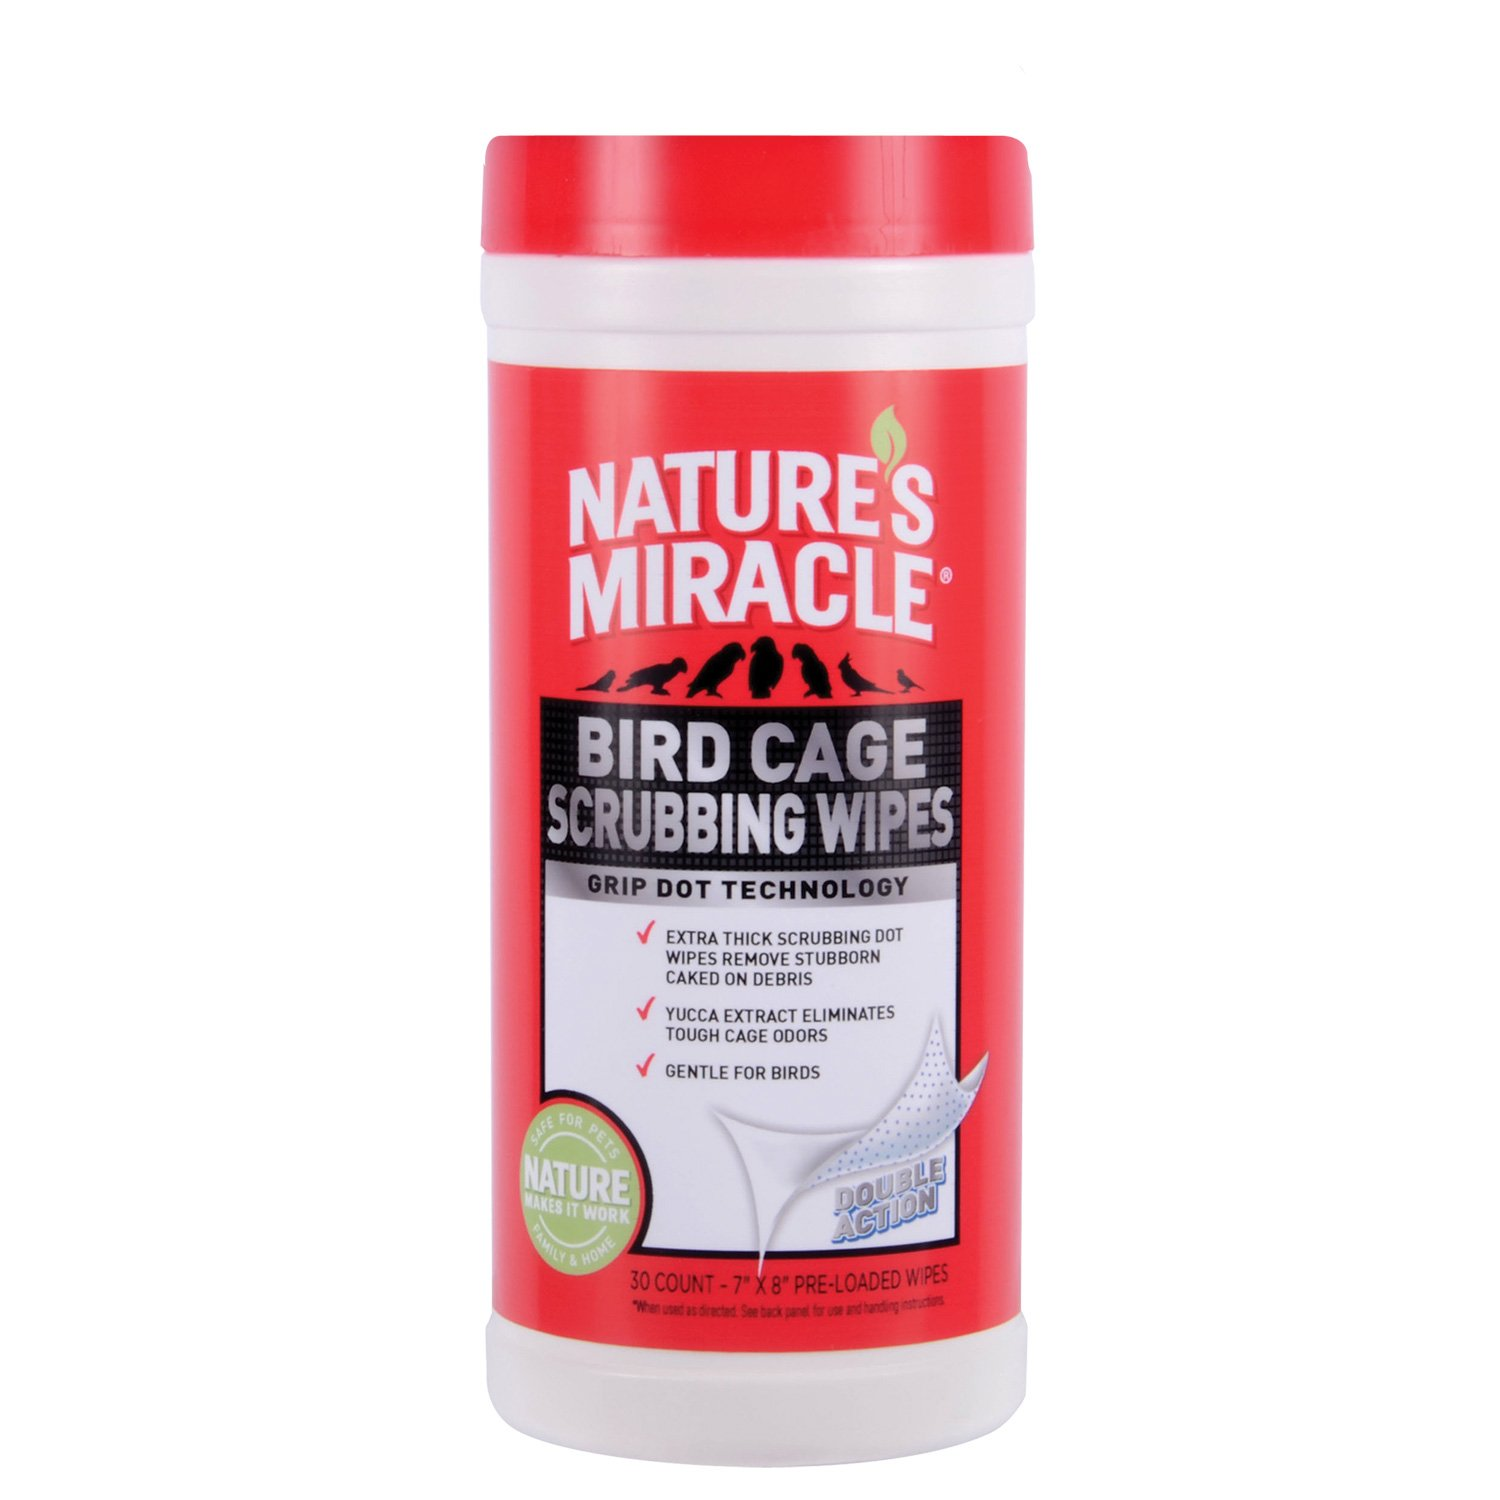 Nature's Miracle 30 Count Bird Cage Scrubbing Wipes